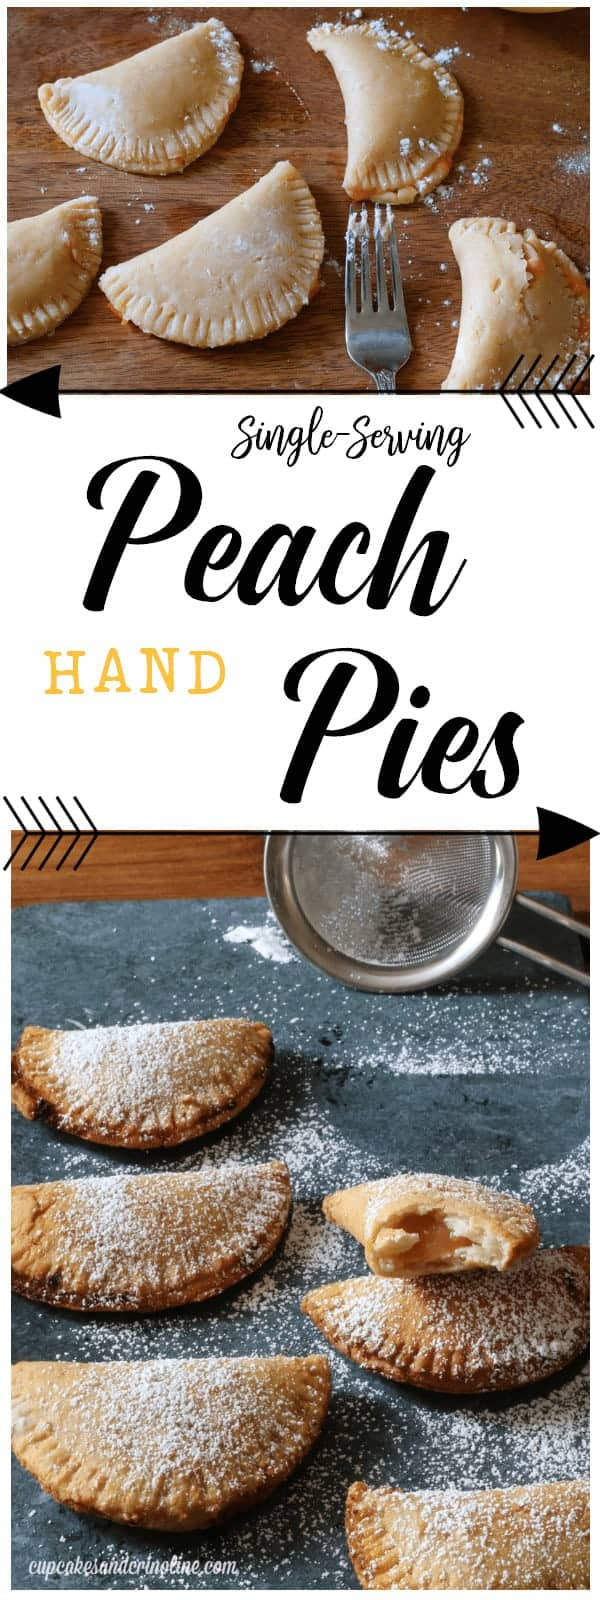 Peach Pie Pocket Recipe - Peach pies- small hand pies before baking and then after baking sprinkled with powdered sugar.